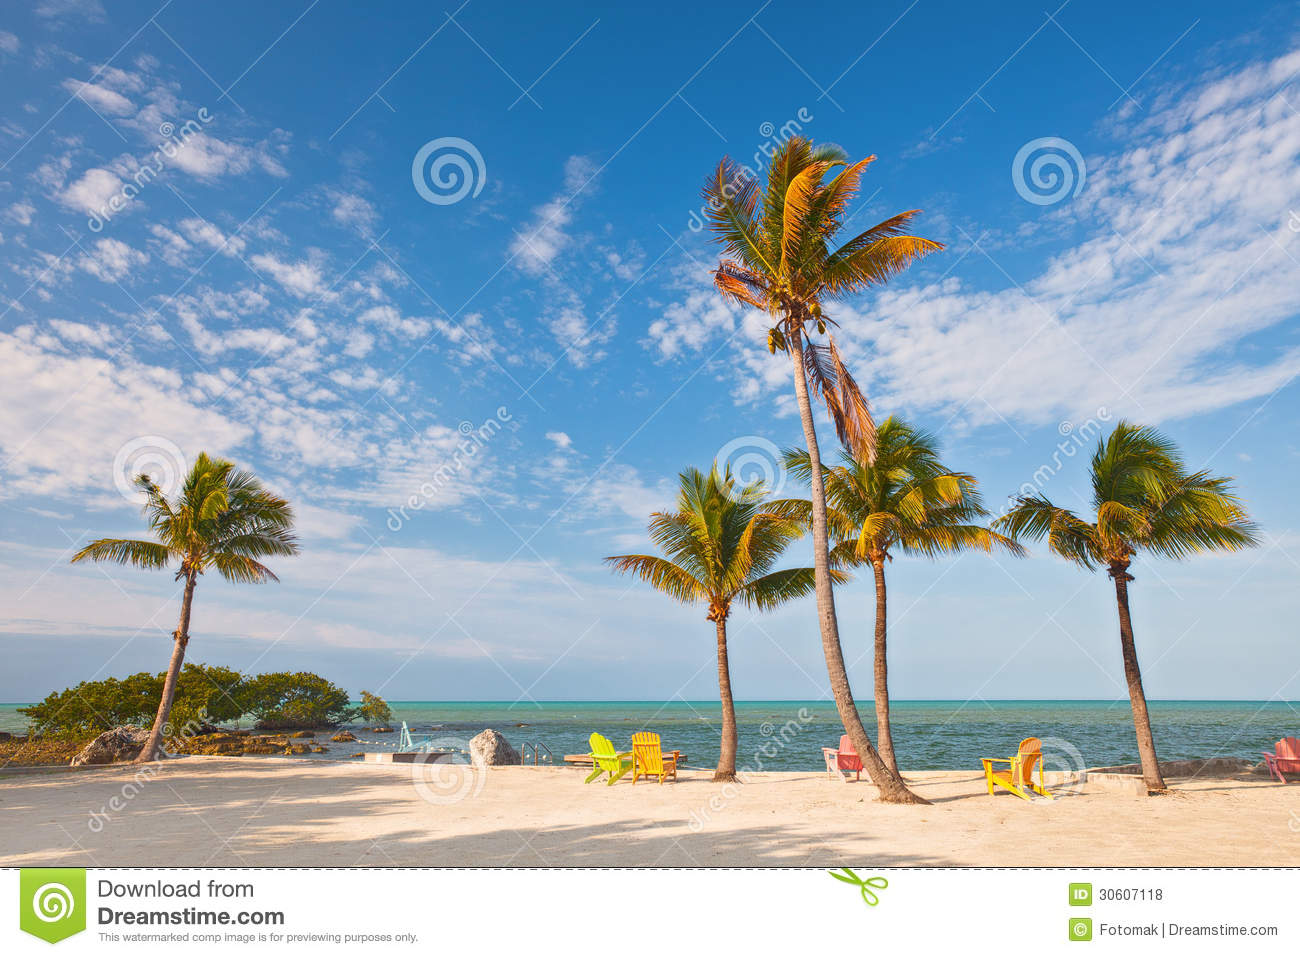 Summer Beach Scene With Palm Trees And Lounge Chairs Royalty Free Stock s Image